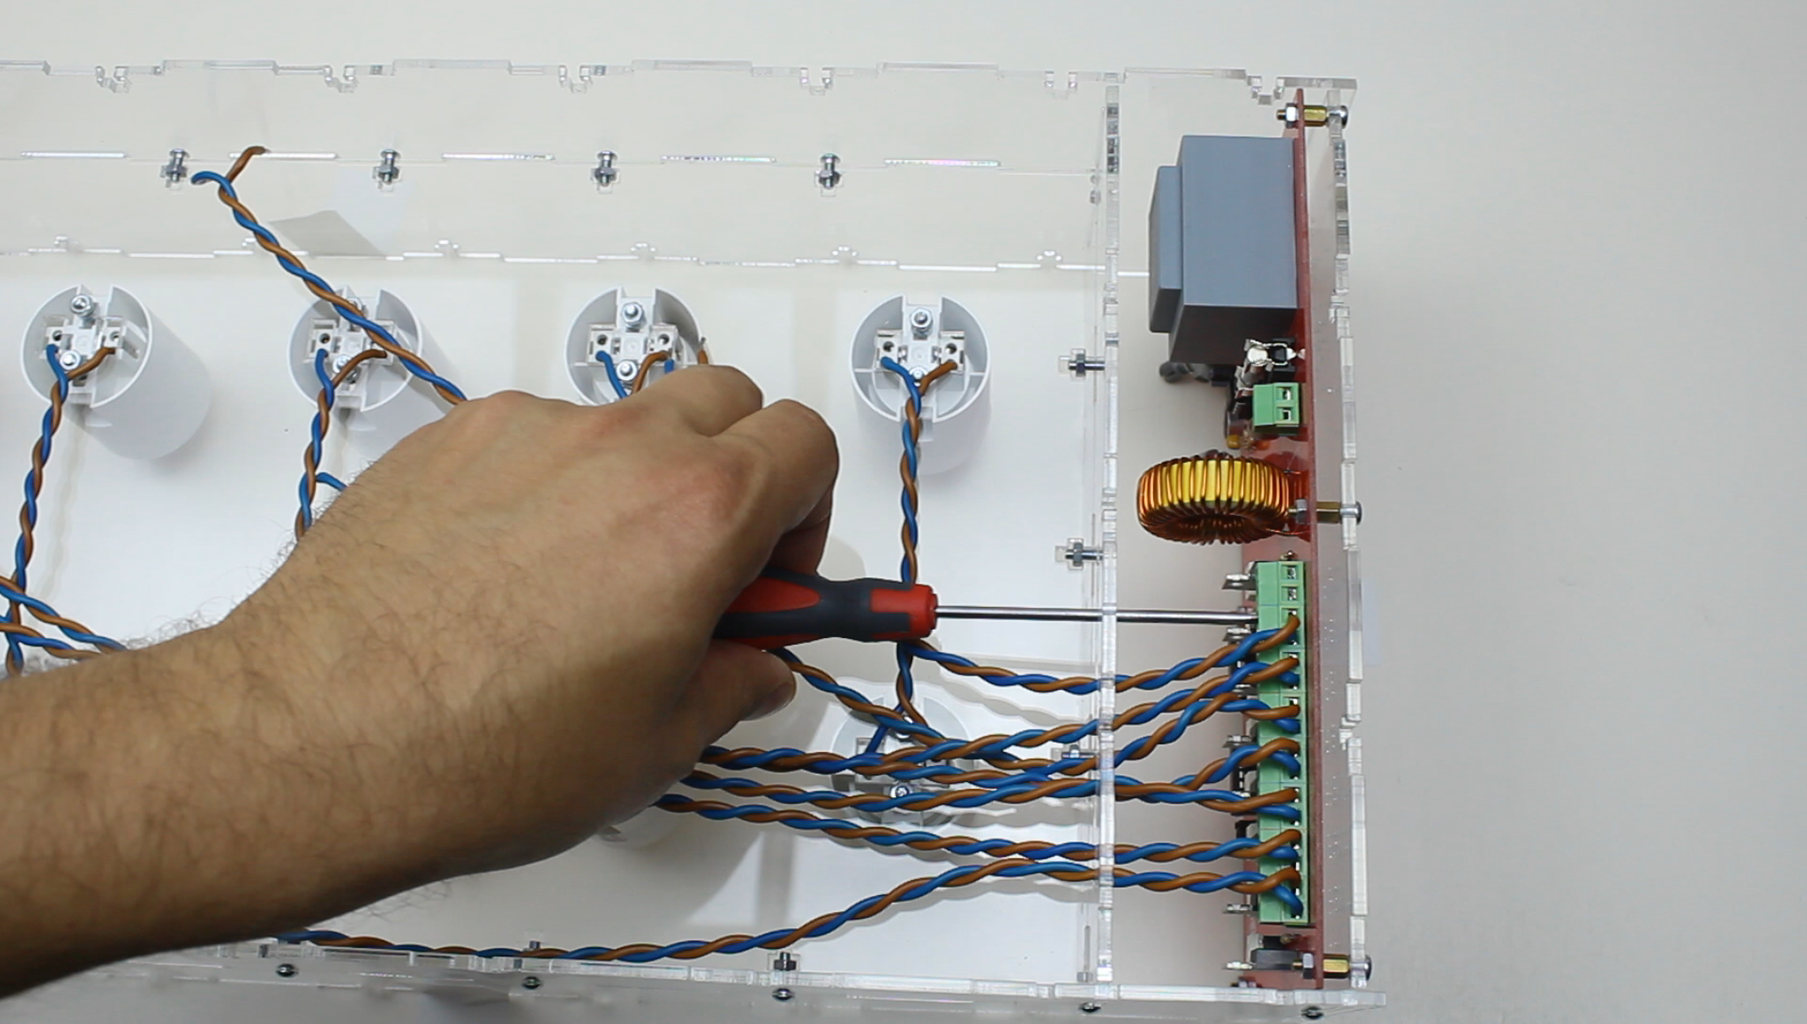 Installing Wires From Each Individual Level Into Terminal Holes.